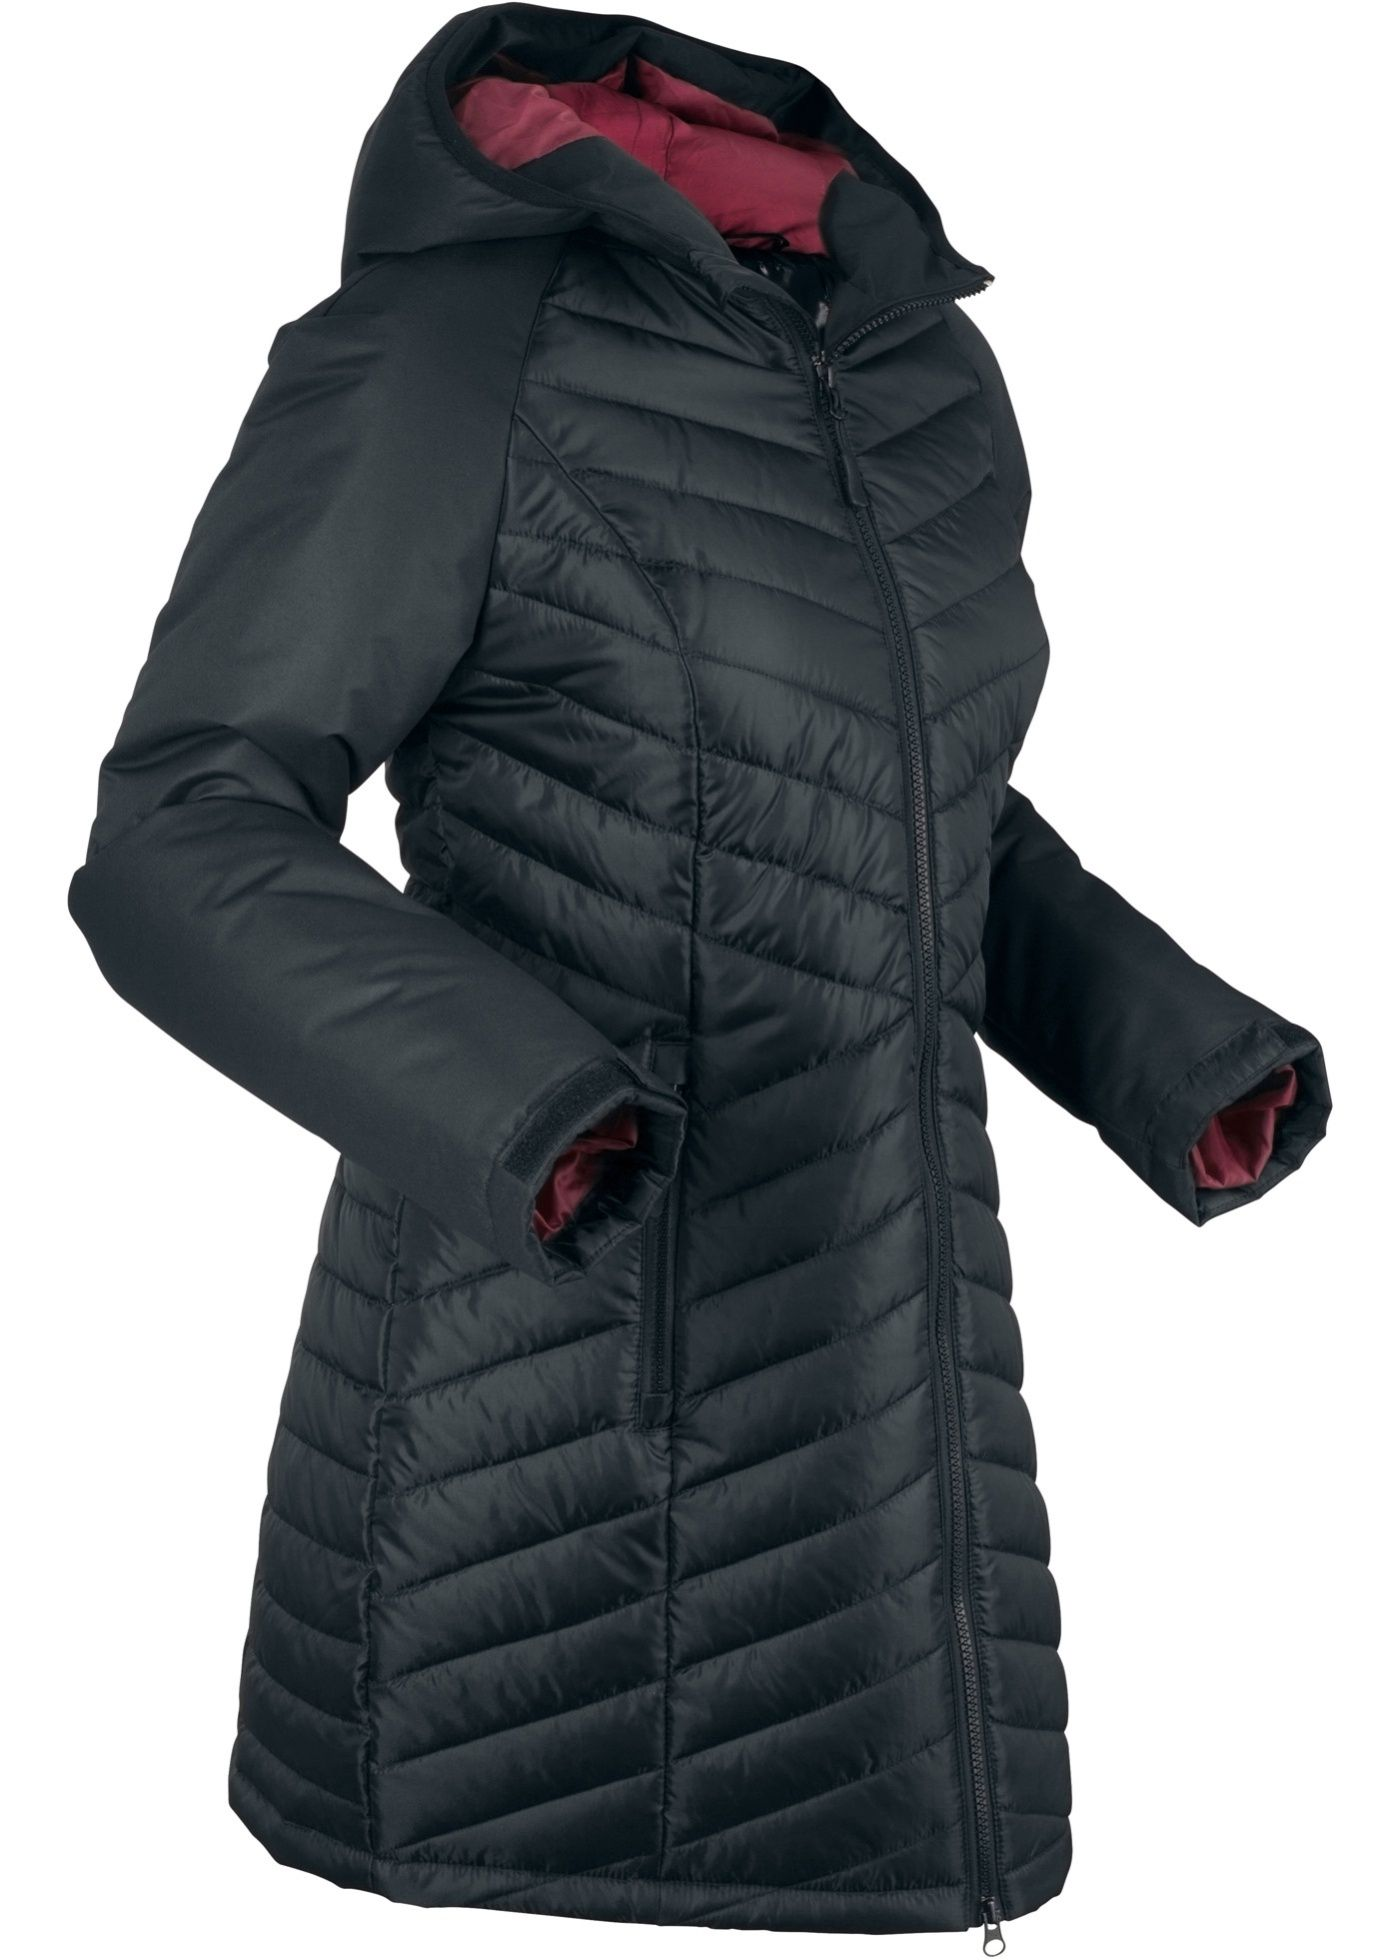 Funktions Mit Funktions Mit SteppeinsatzProducts In Outdoorlangjacke Outdoorlangjacke cAj345LqR